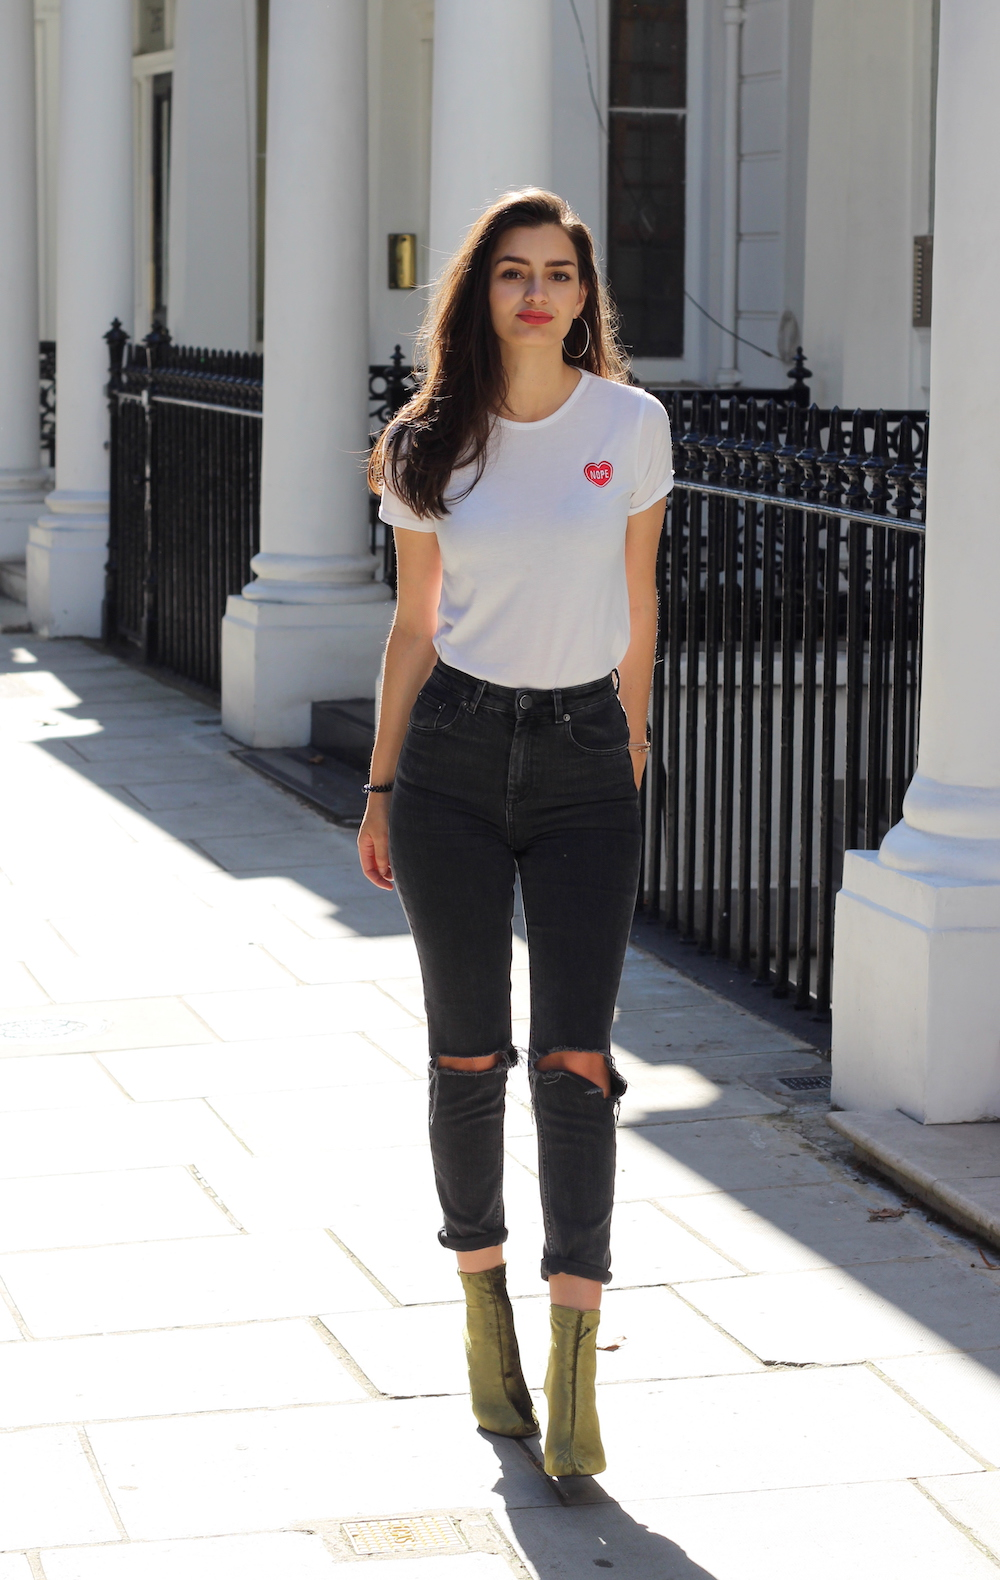 peexo style london casual basics